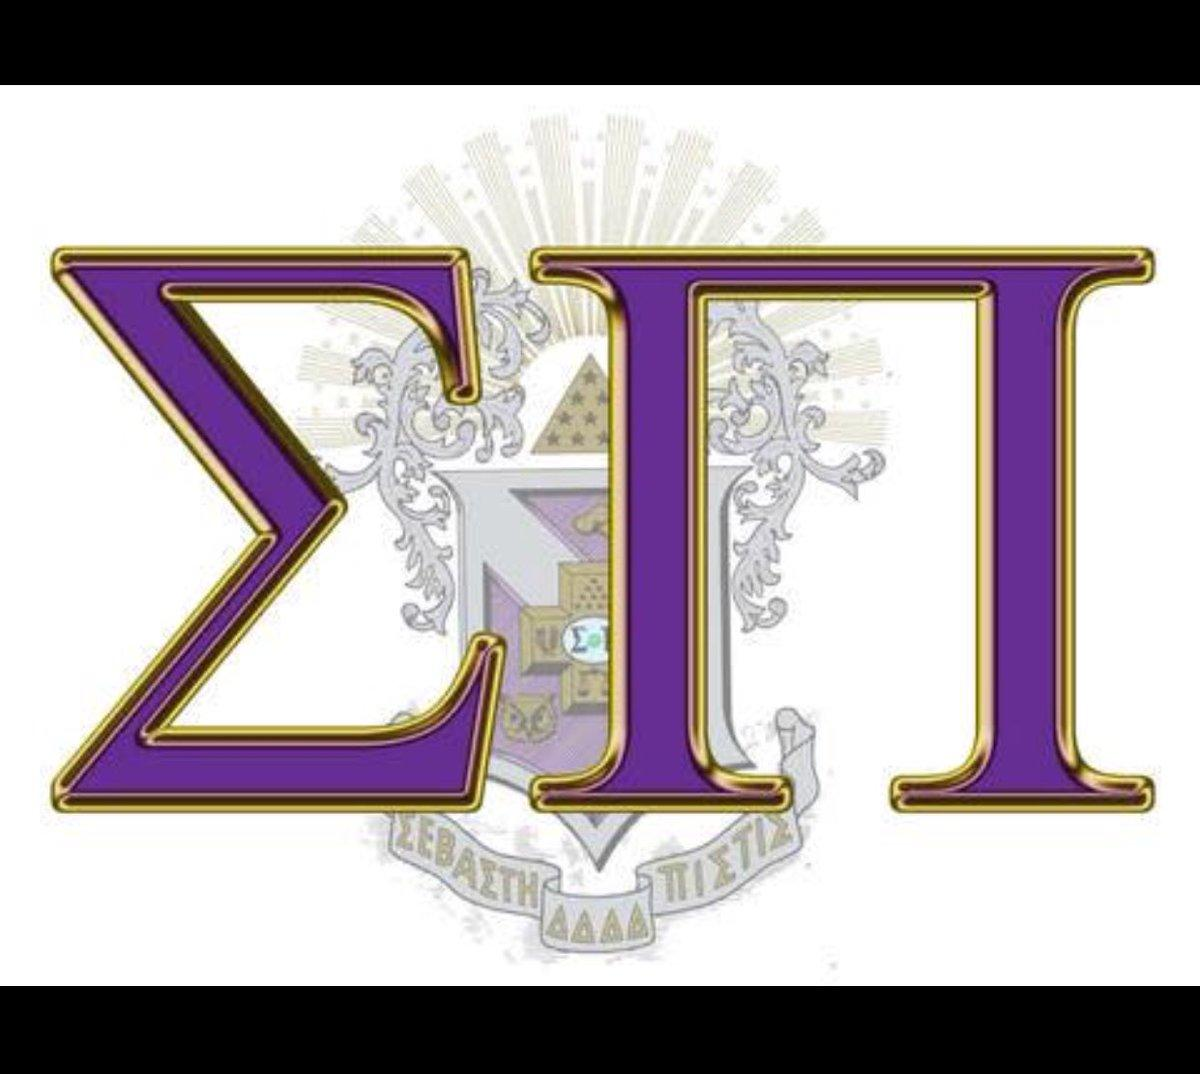 Sigma Pi Delta Rho 1st Annual Homecoming Golf Outing